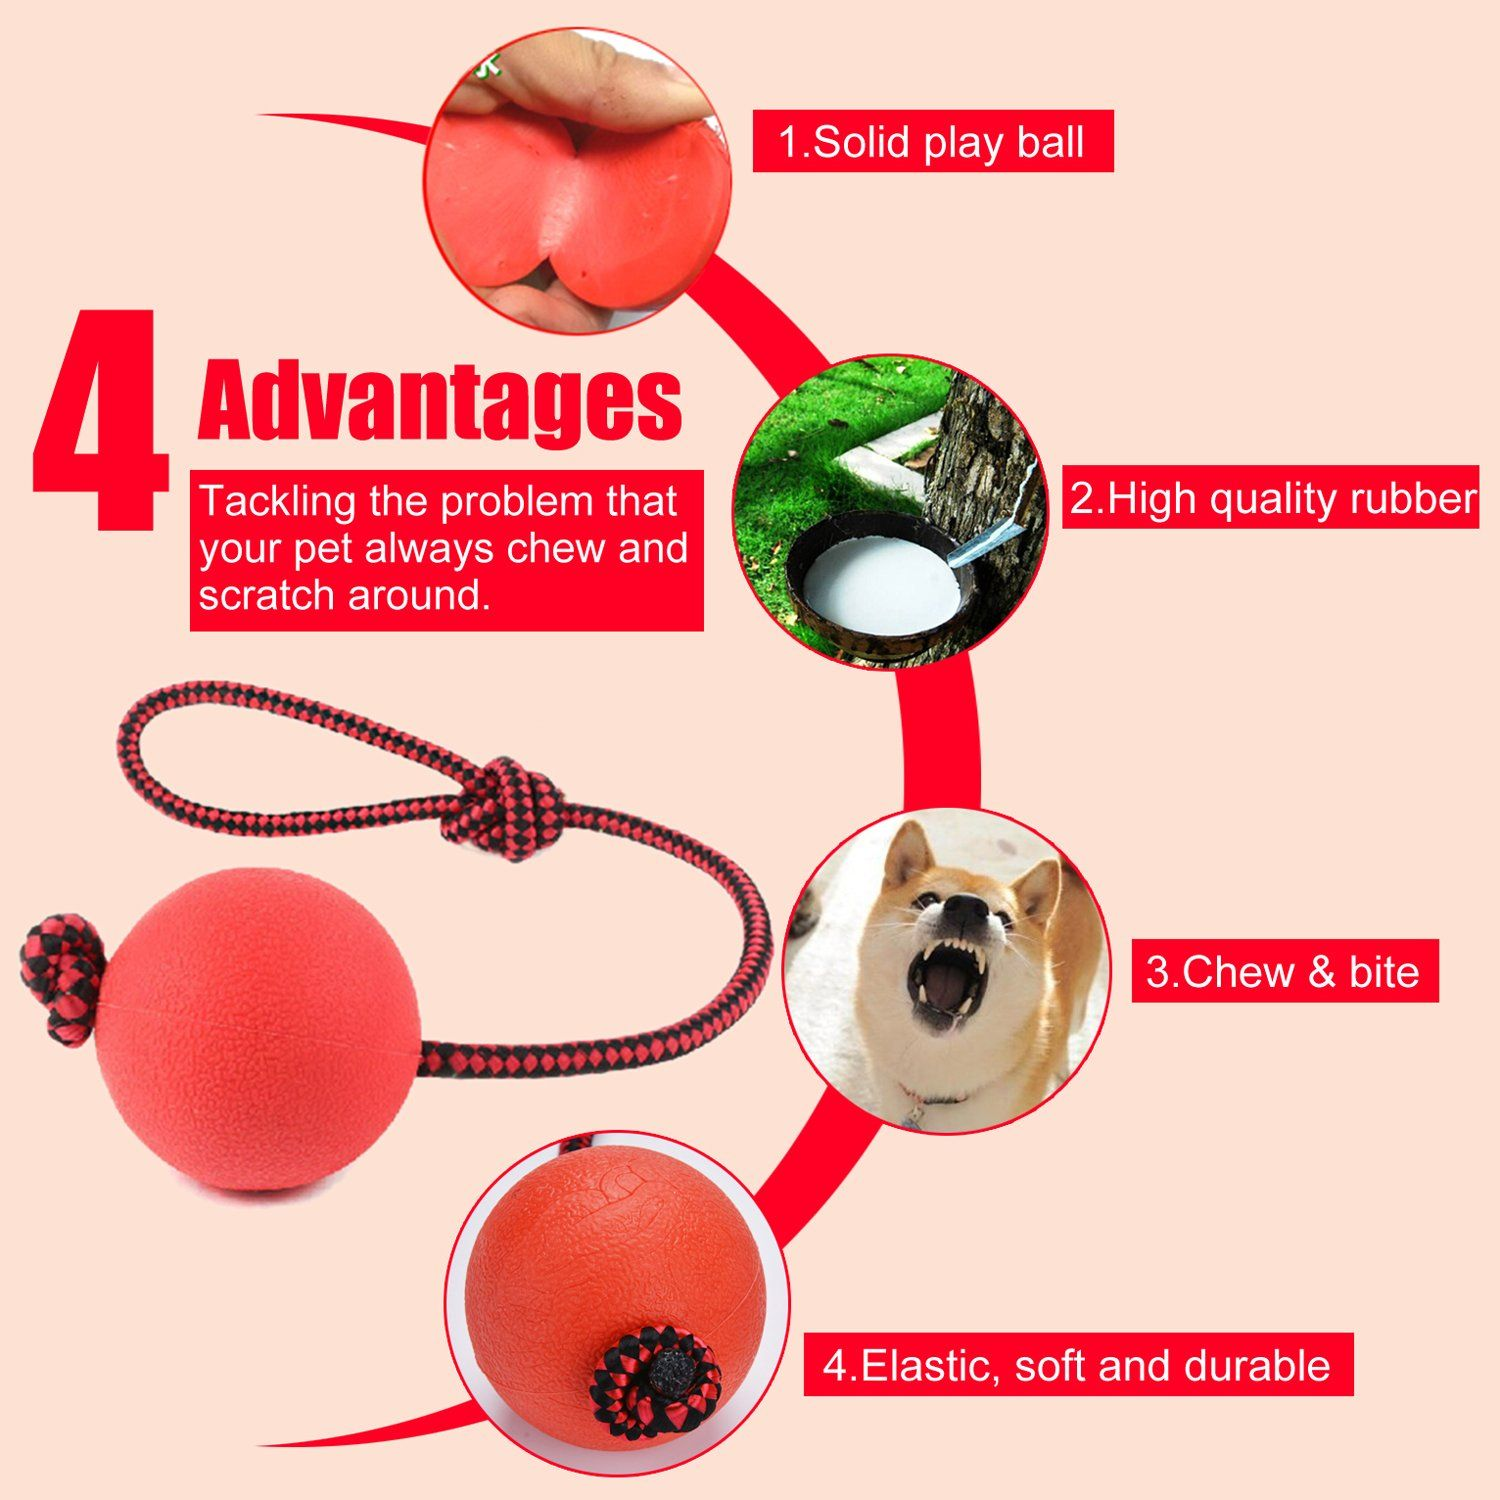 Legendog Dog Ball 3 Pack Rubber Dog Balls With Rope Dog Toys For Training Durable Tennis Balls For Dogs Red Click Im Dog Ball Dog Toy Ball Dog Ball Launcher